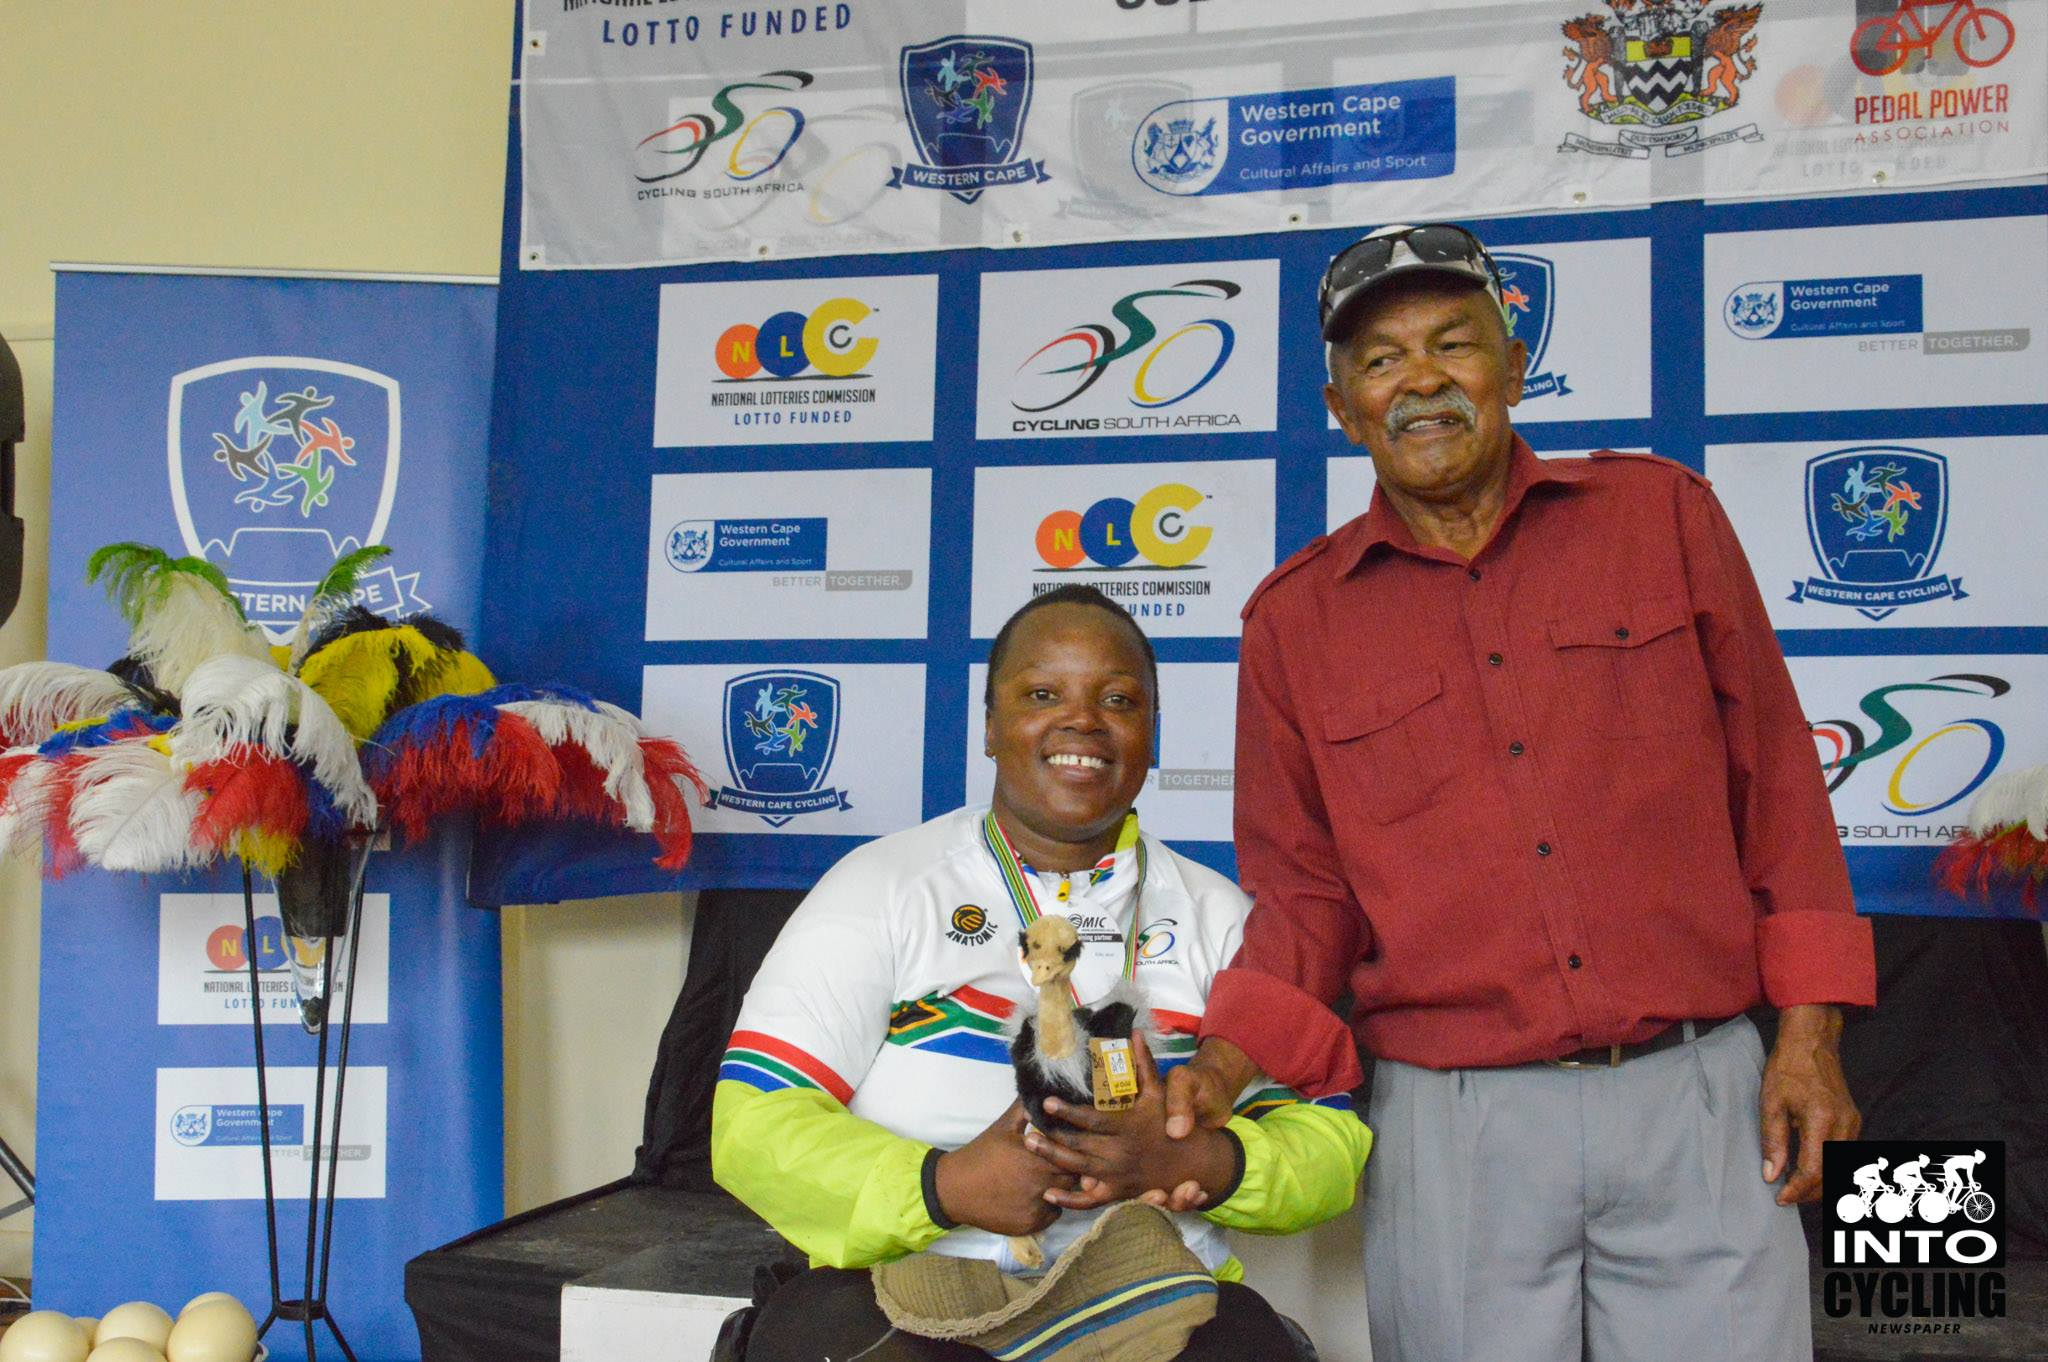 Palesa Manaleng proudly wears her new National Championships stripes after winning a gold medal in the Women's H3 handcycle event at the 2018 SA National Road and Para-cycling Championships, which took place in the streets of Oudtshoorn from 6-11 February. 📷 www.intocycling.co.za